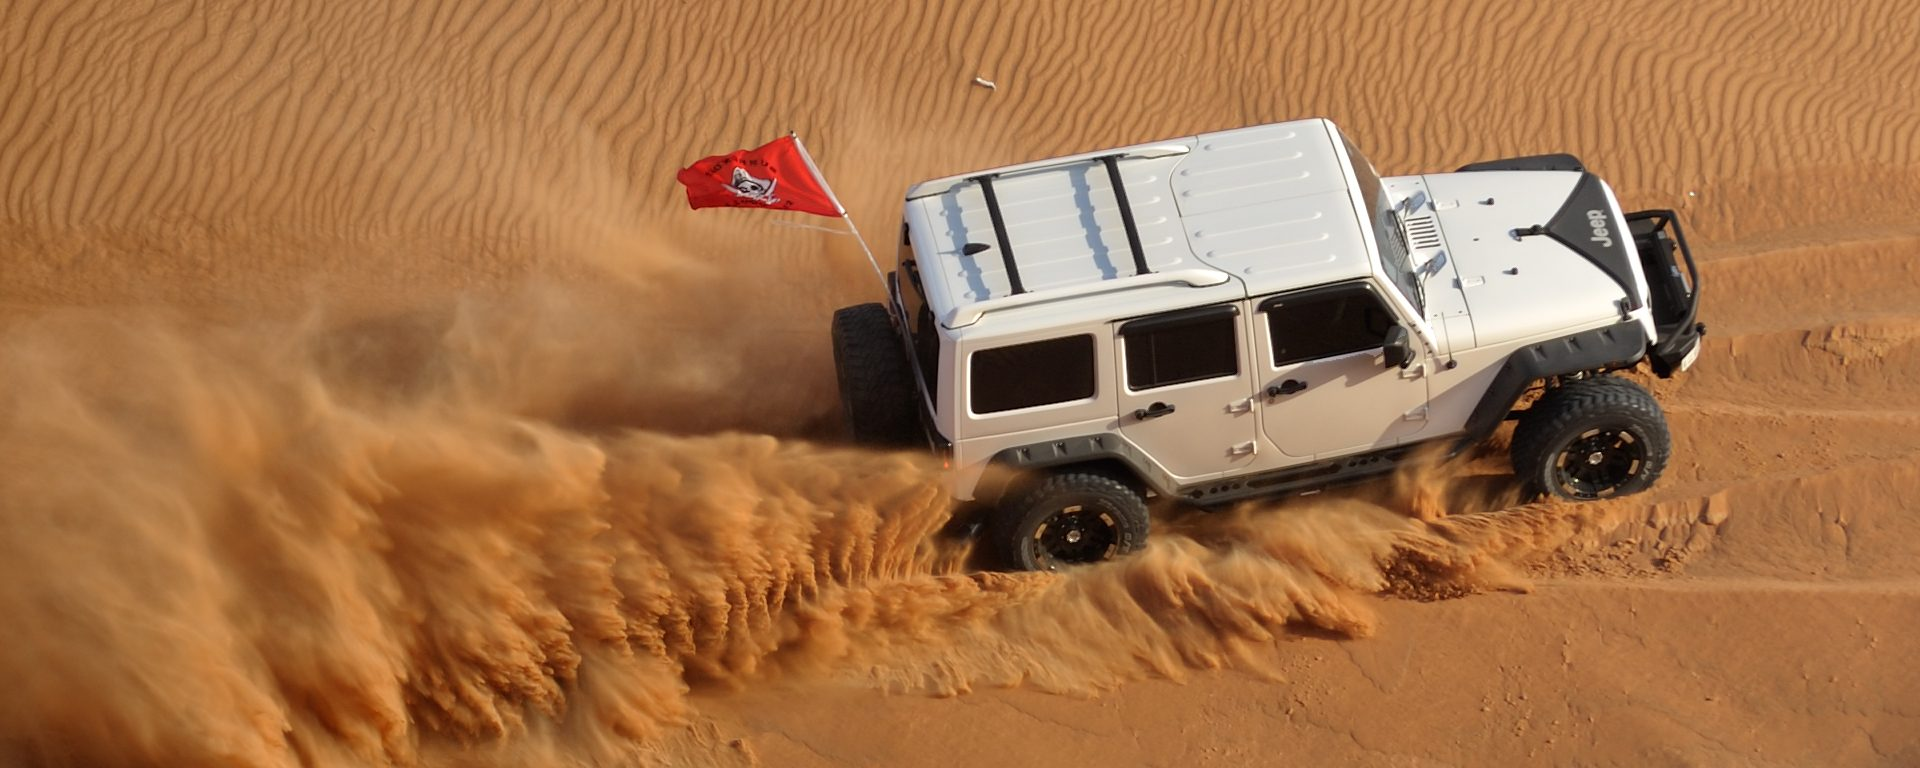 Jeep in Sand